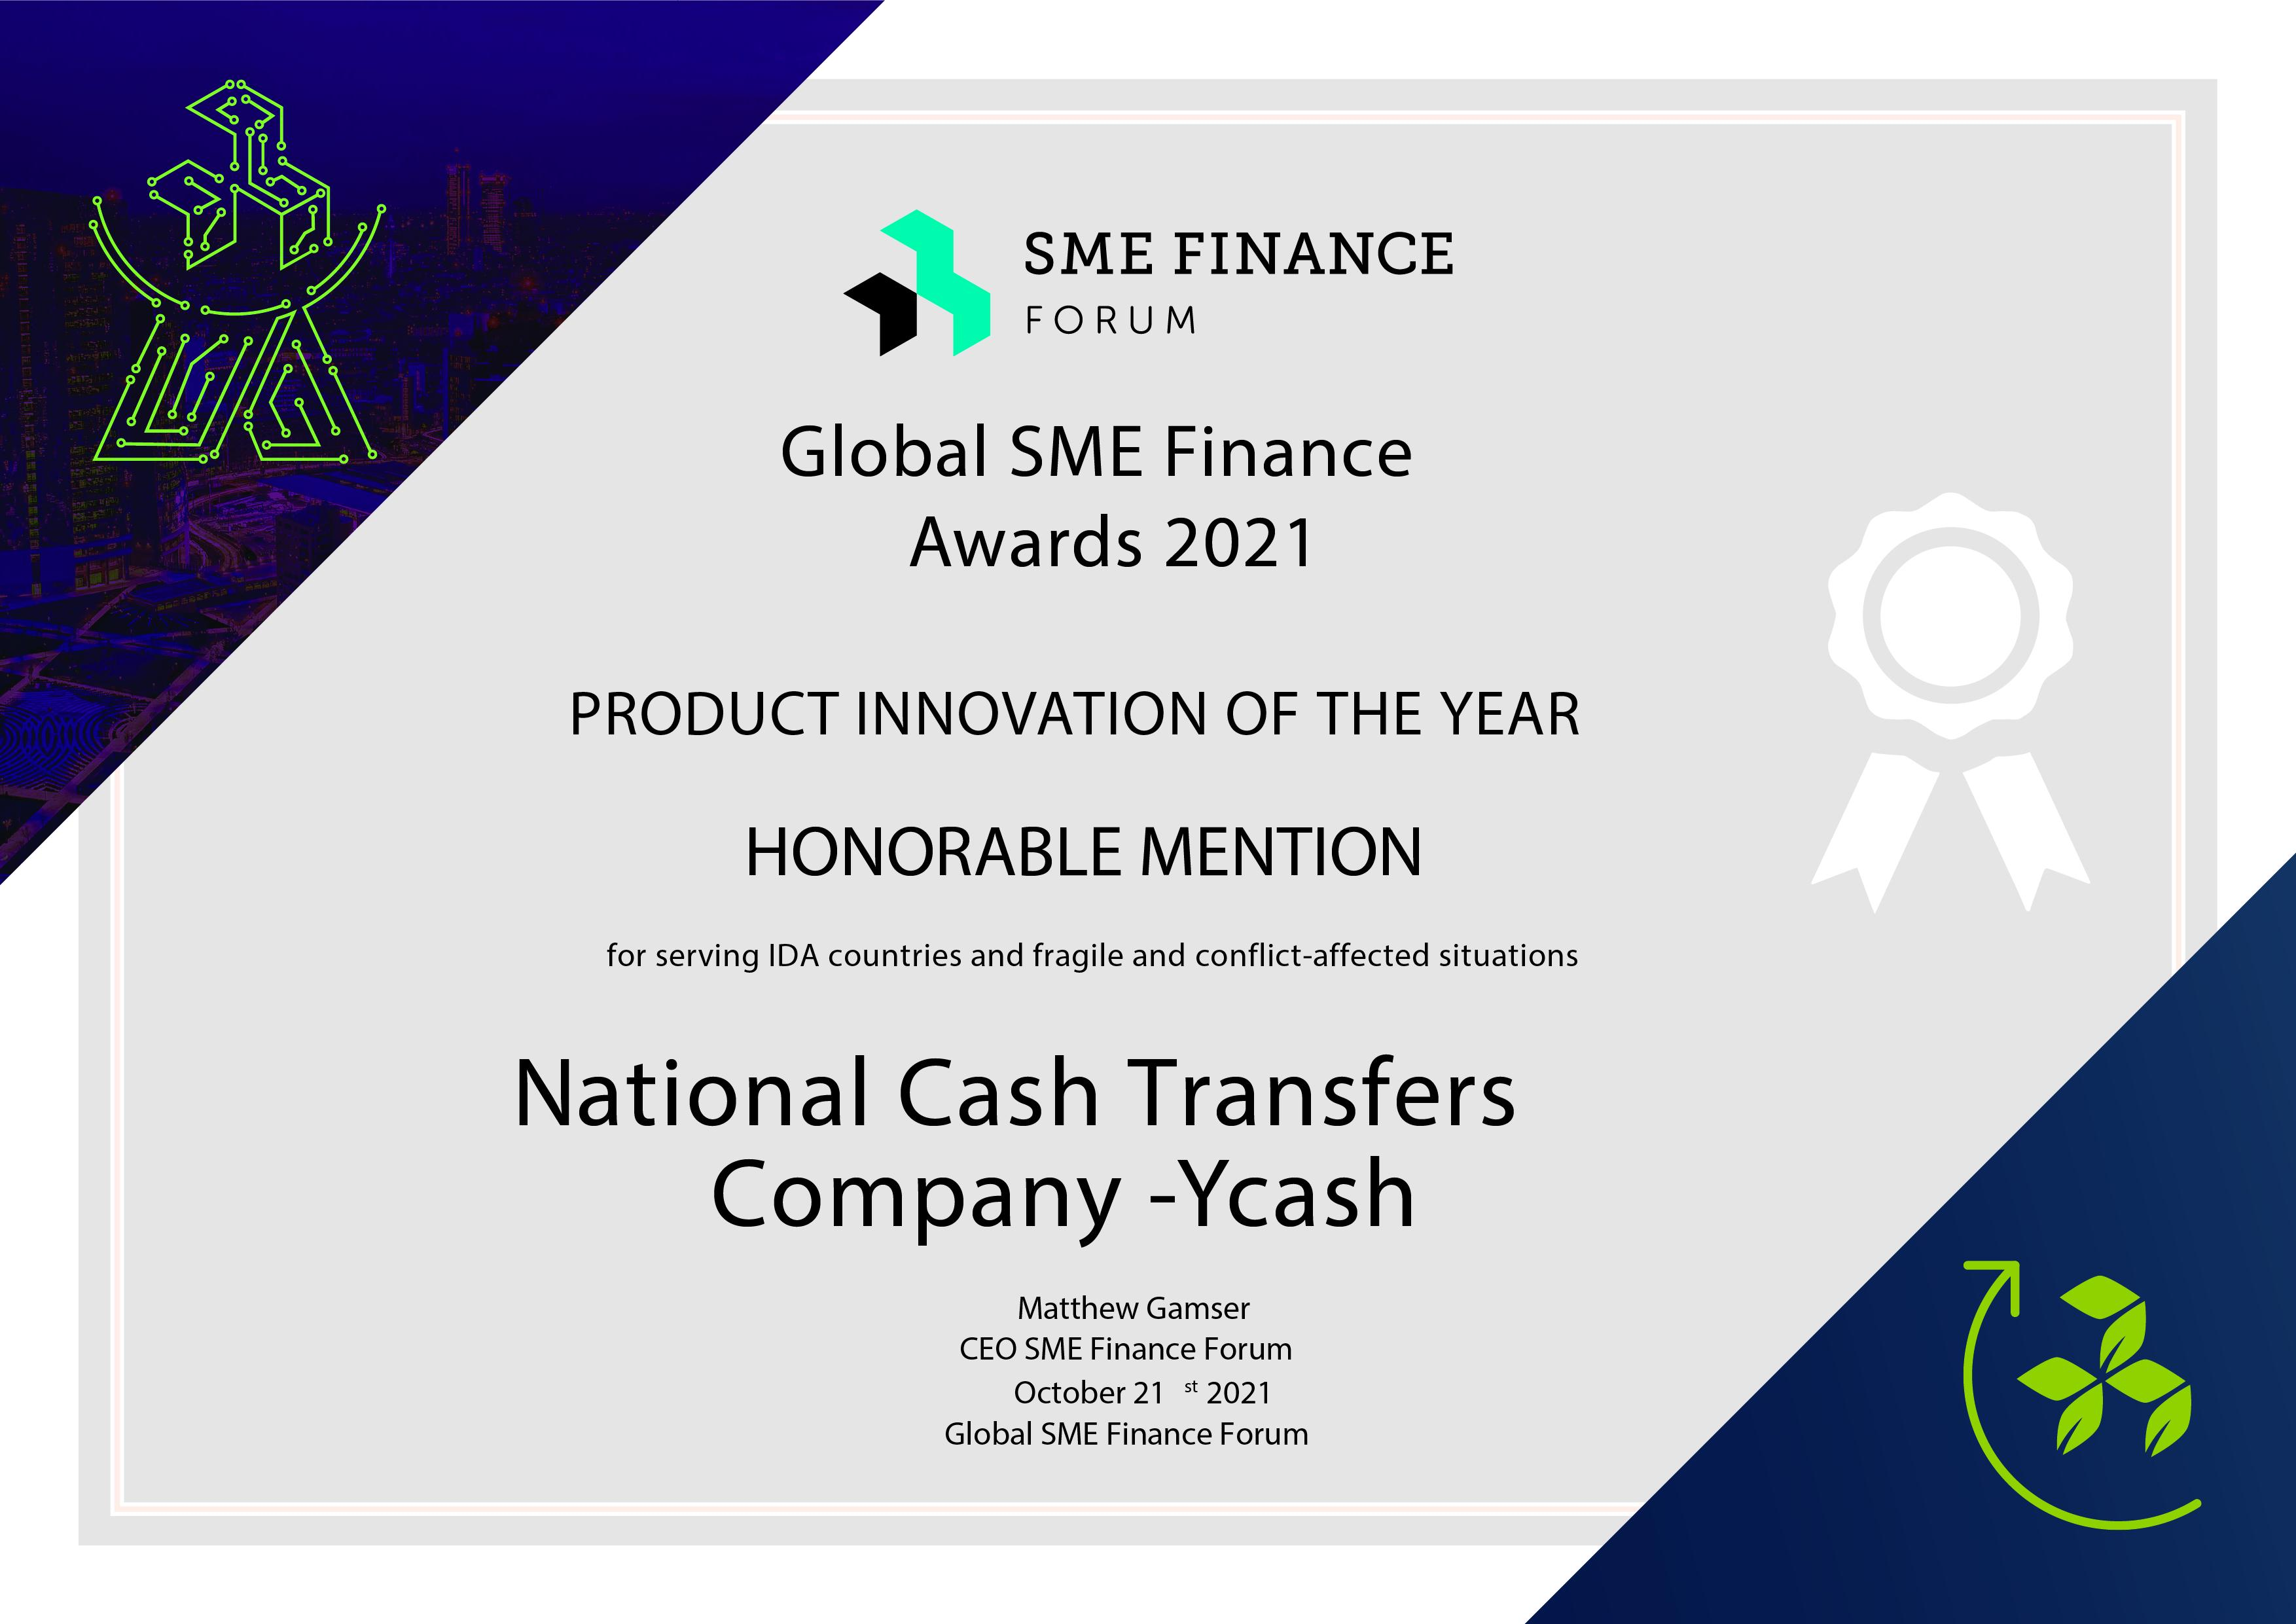 YCASH Receives SPECIAL RECOGNITION from SME Finance Award Program